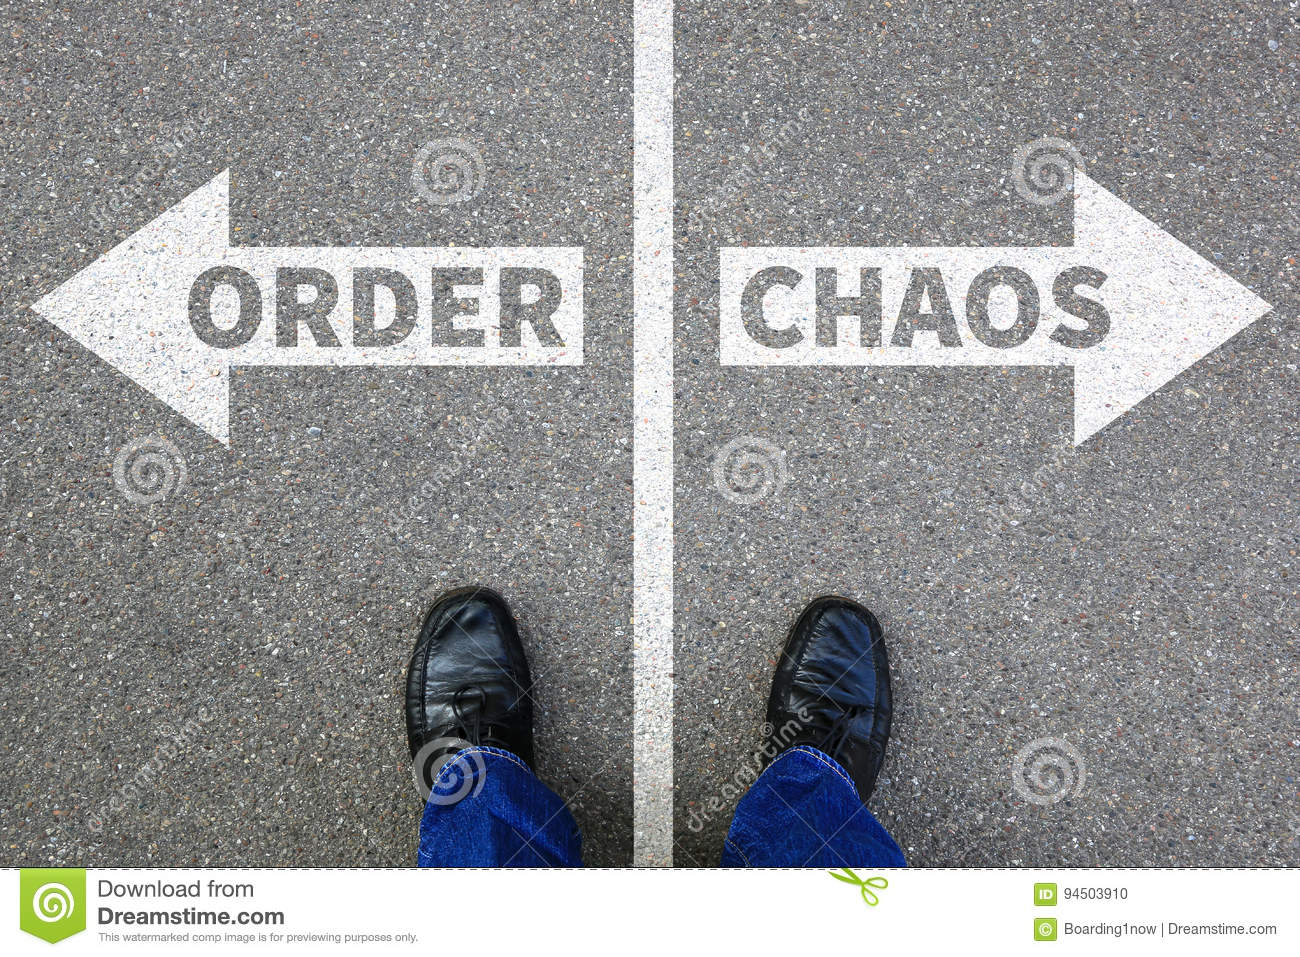 Chaos and order organisation office businessman business concept